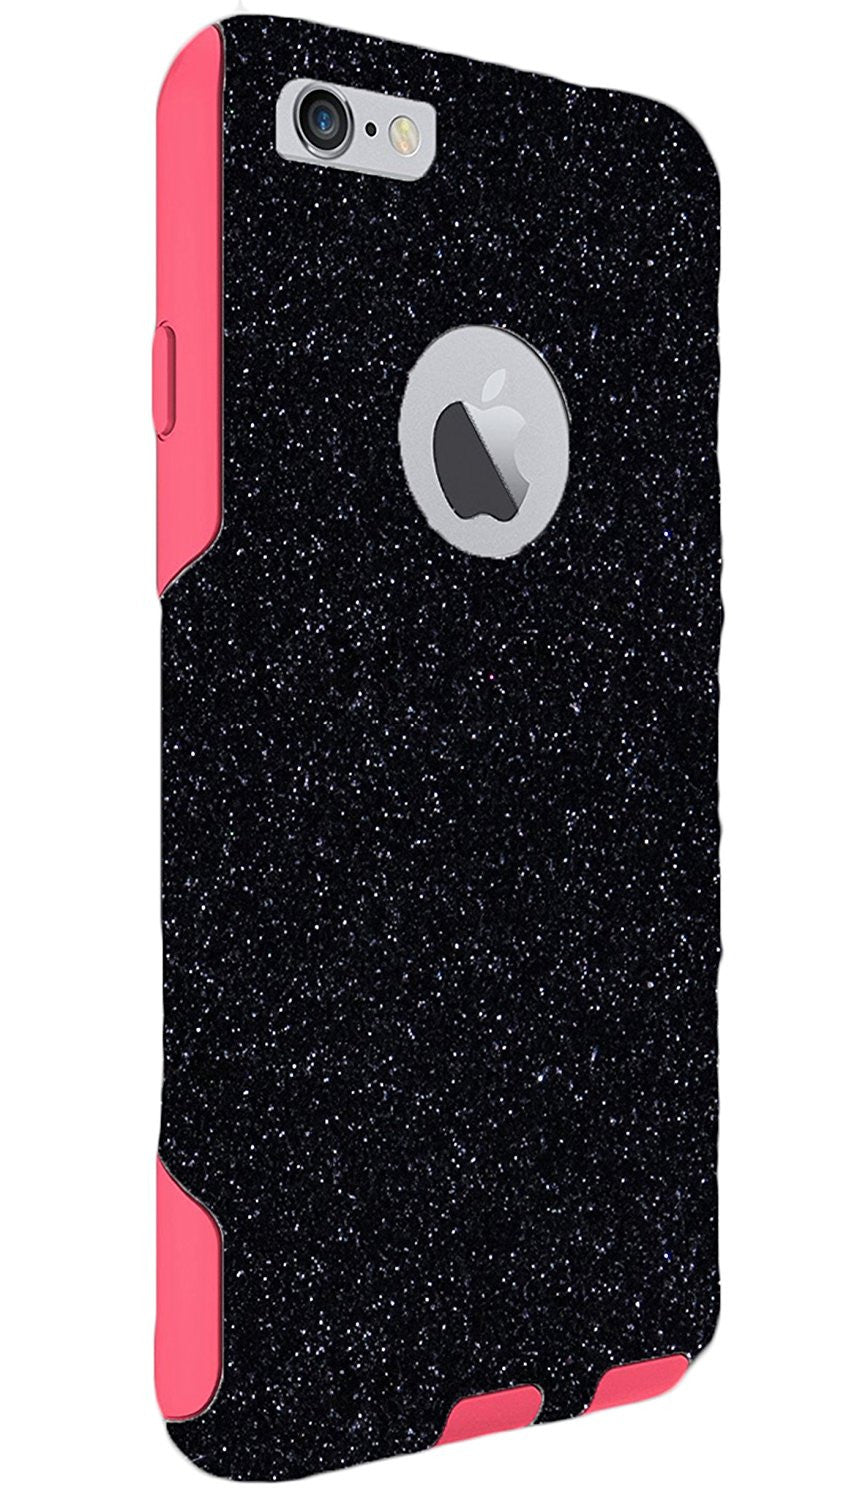 3f5c75e531 iPhone 6/6s Case - OtterBox Commuter Series - Retail Packaging 4.7